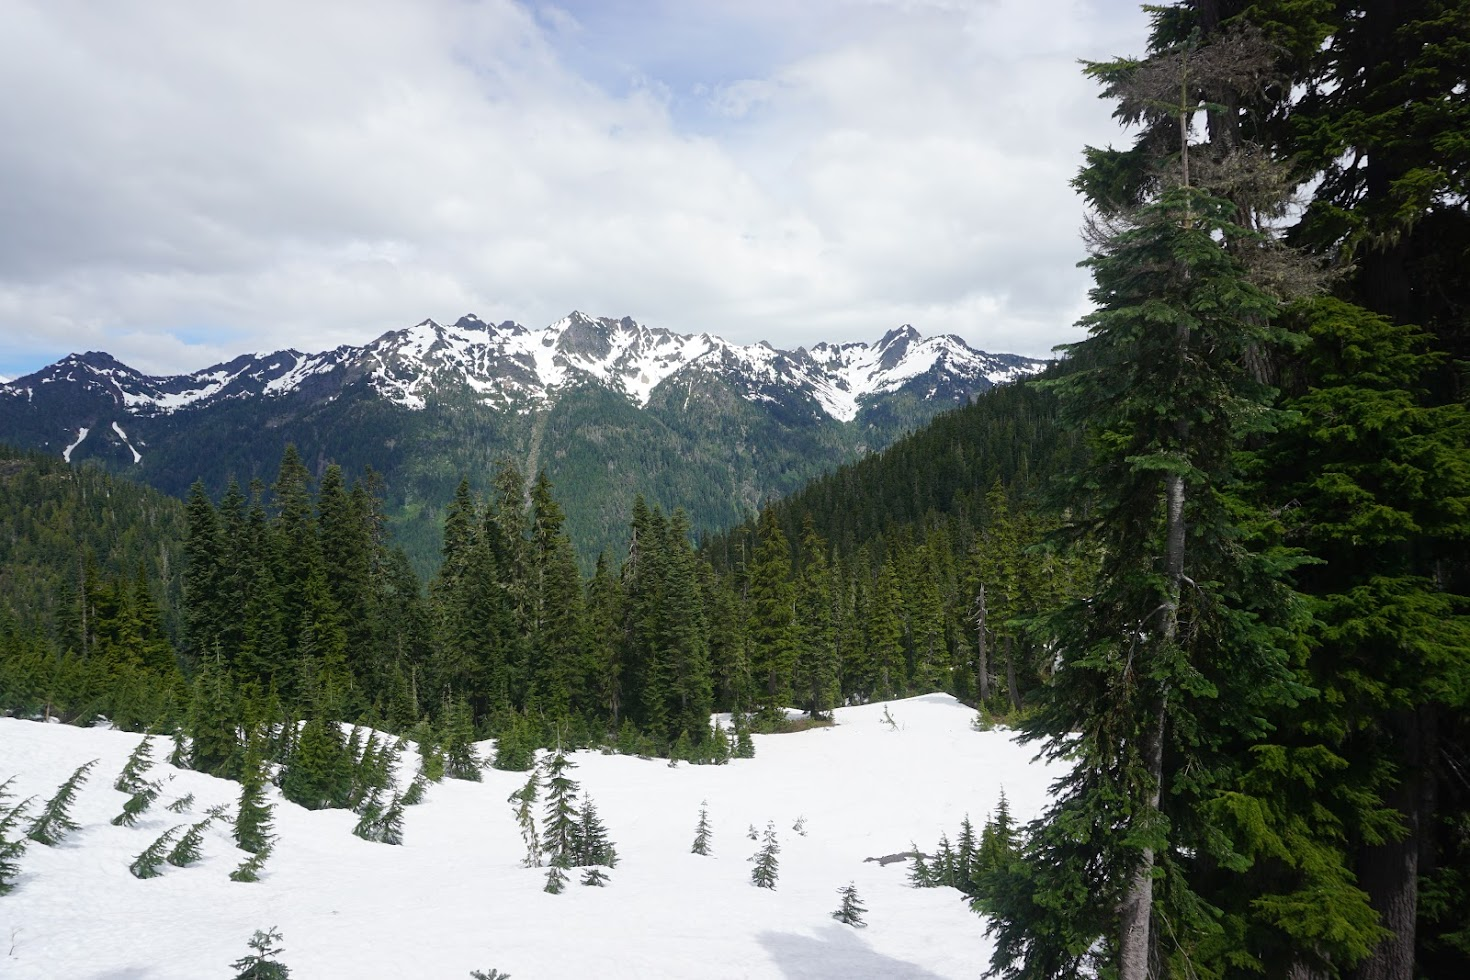 The Olympics, Olympic National Park, Washington